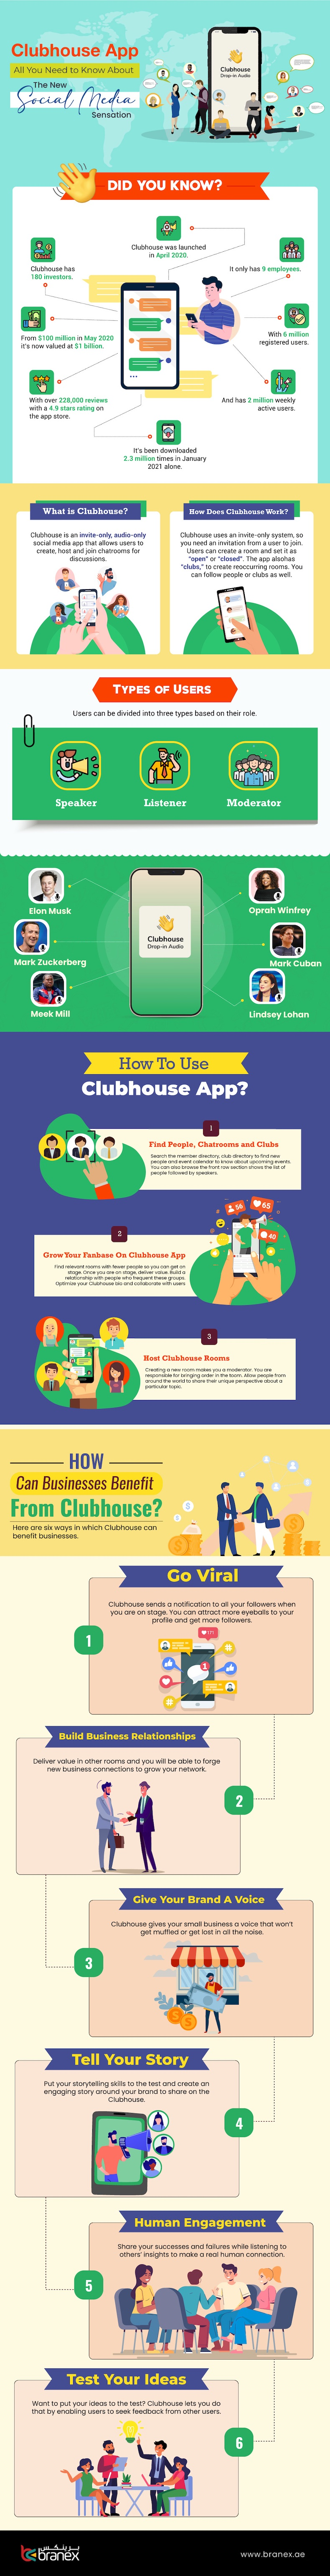 All about the Clubhouse social media app infographic